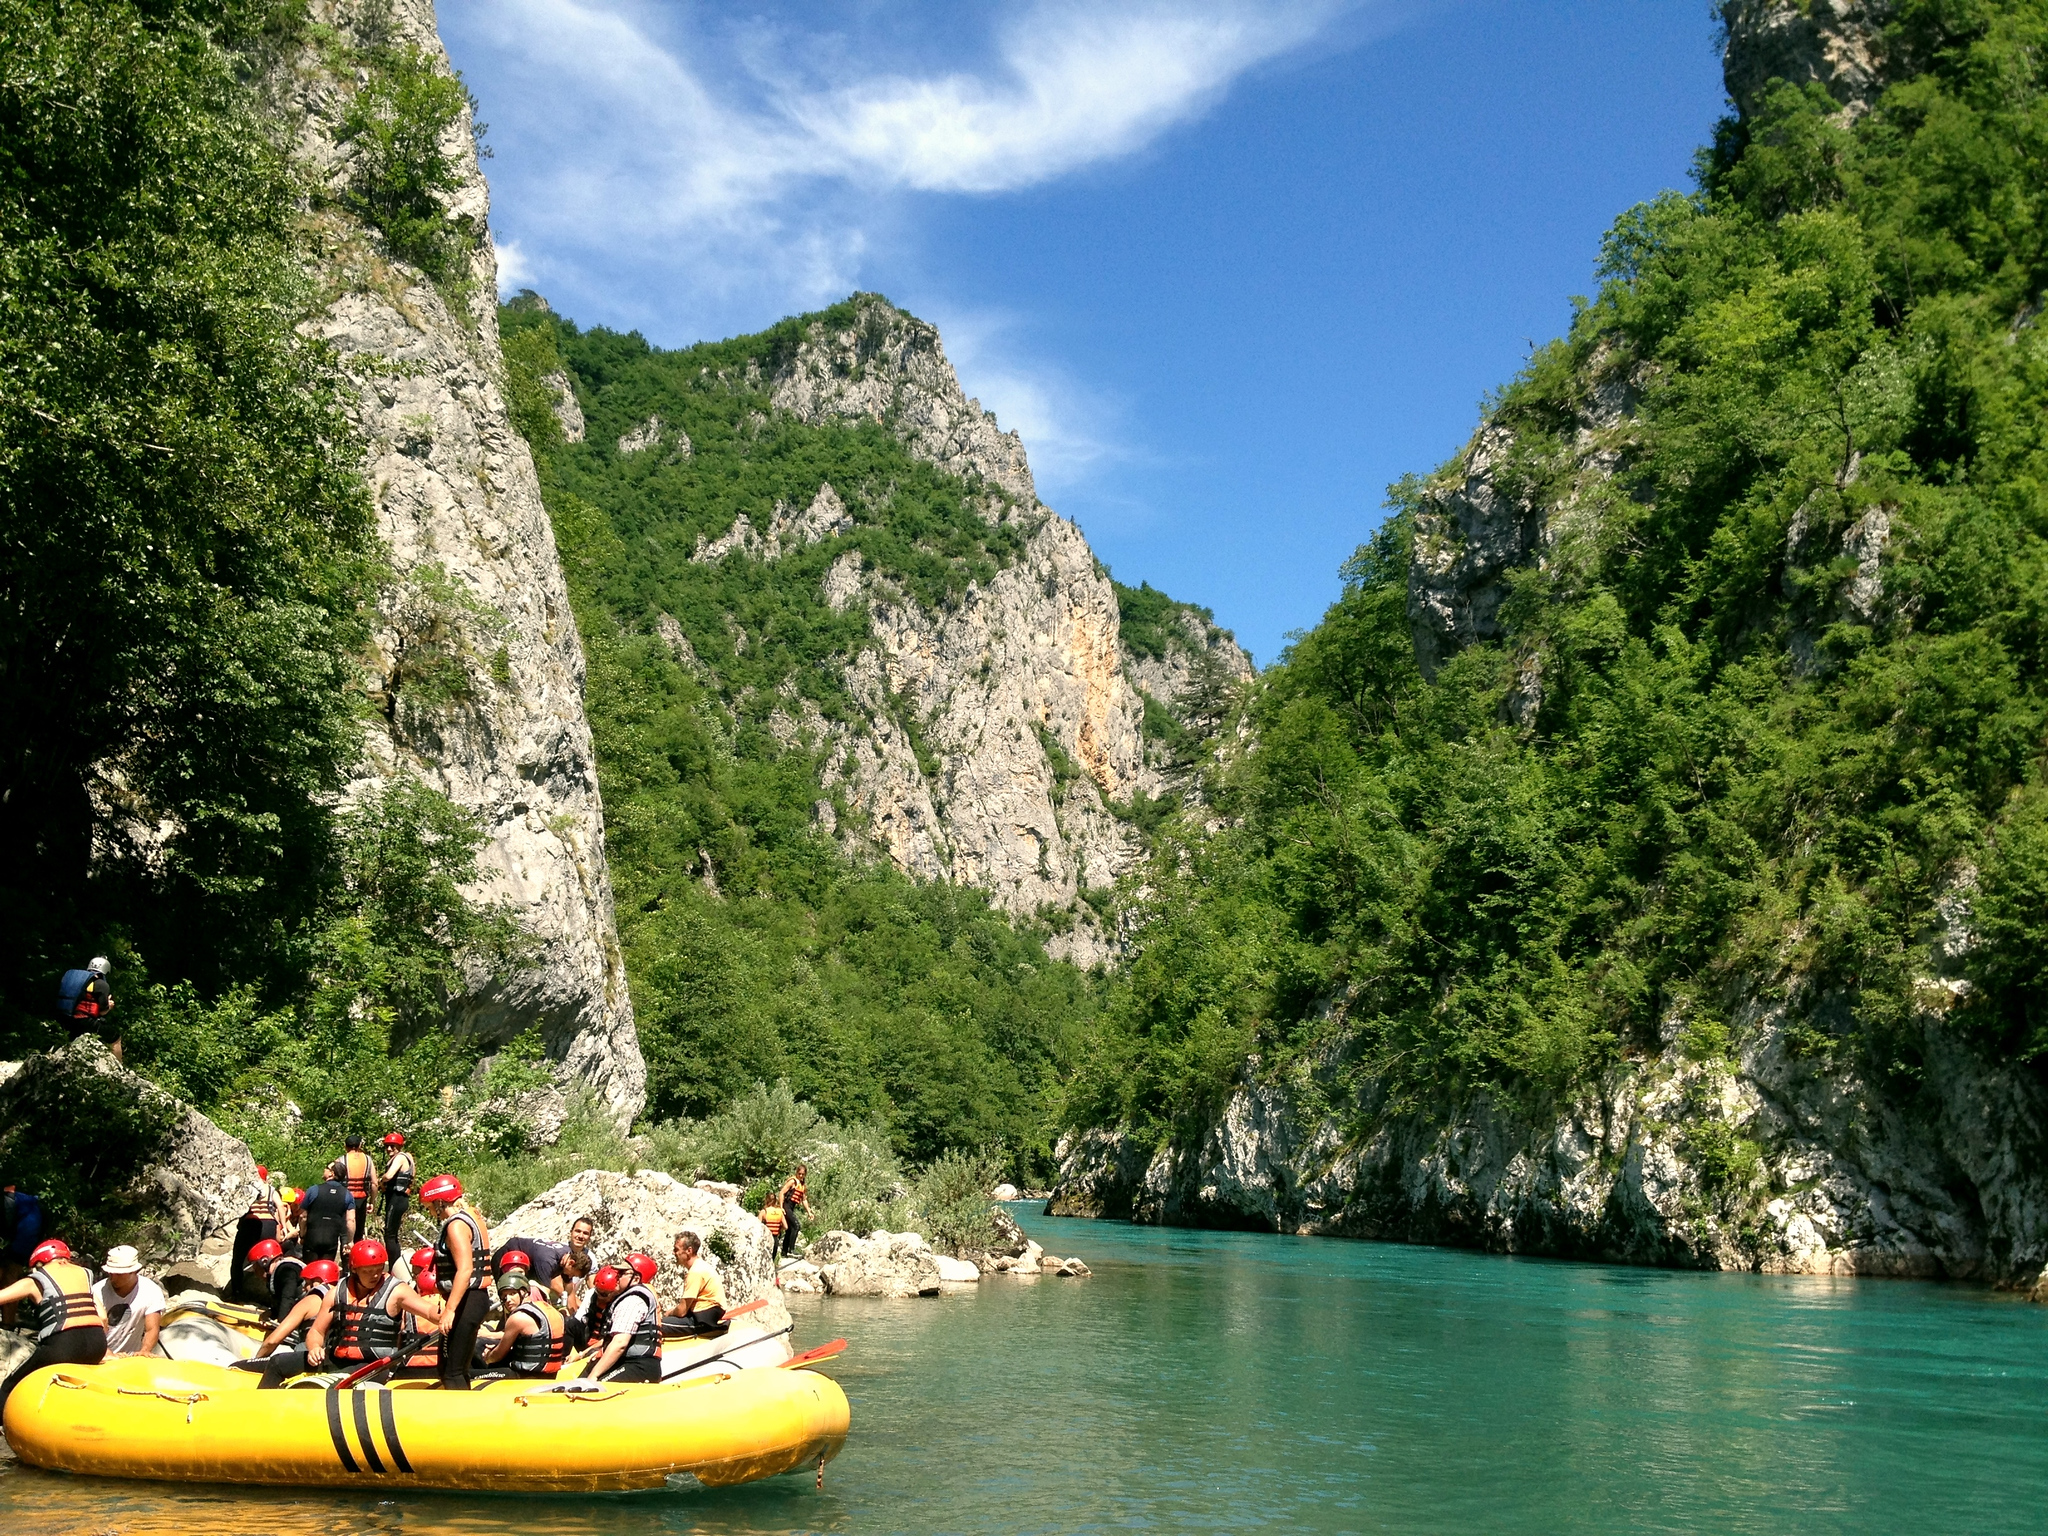 A yellow raft parking in the middle of the green Tara river, surrounded by limestone cliffs and trees.